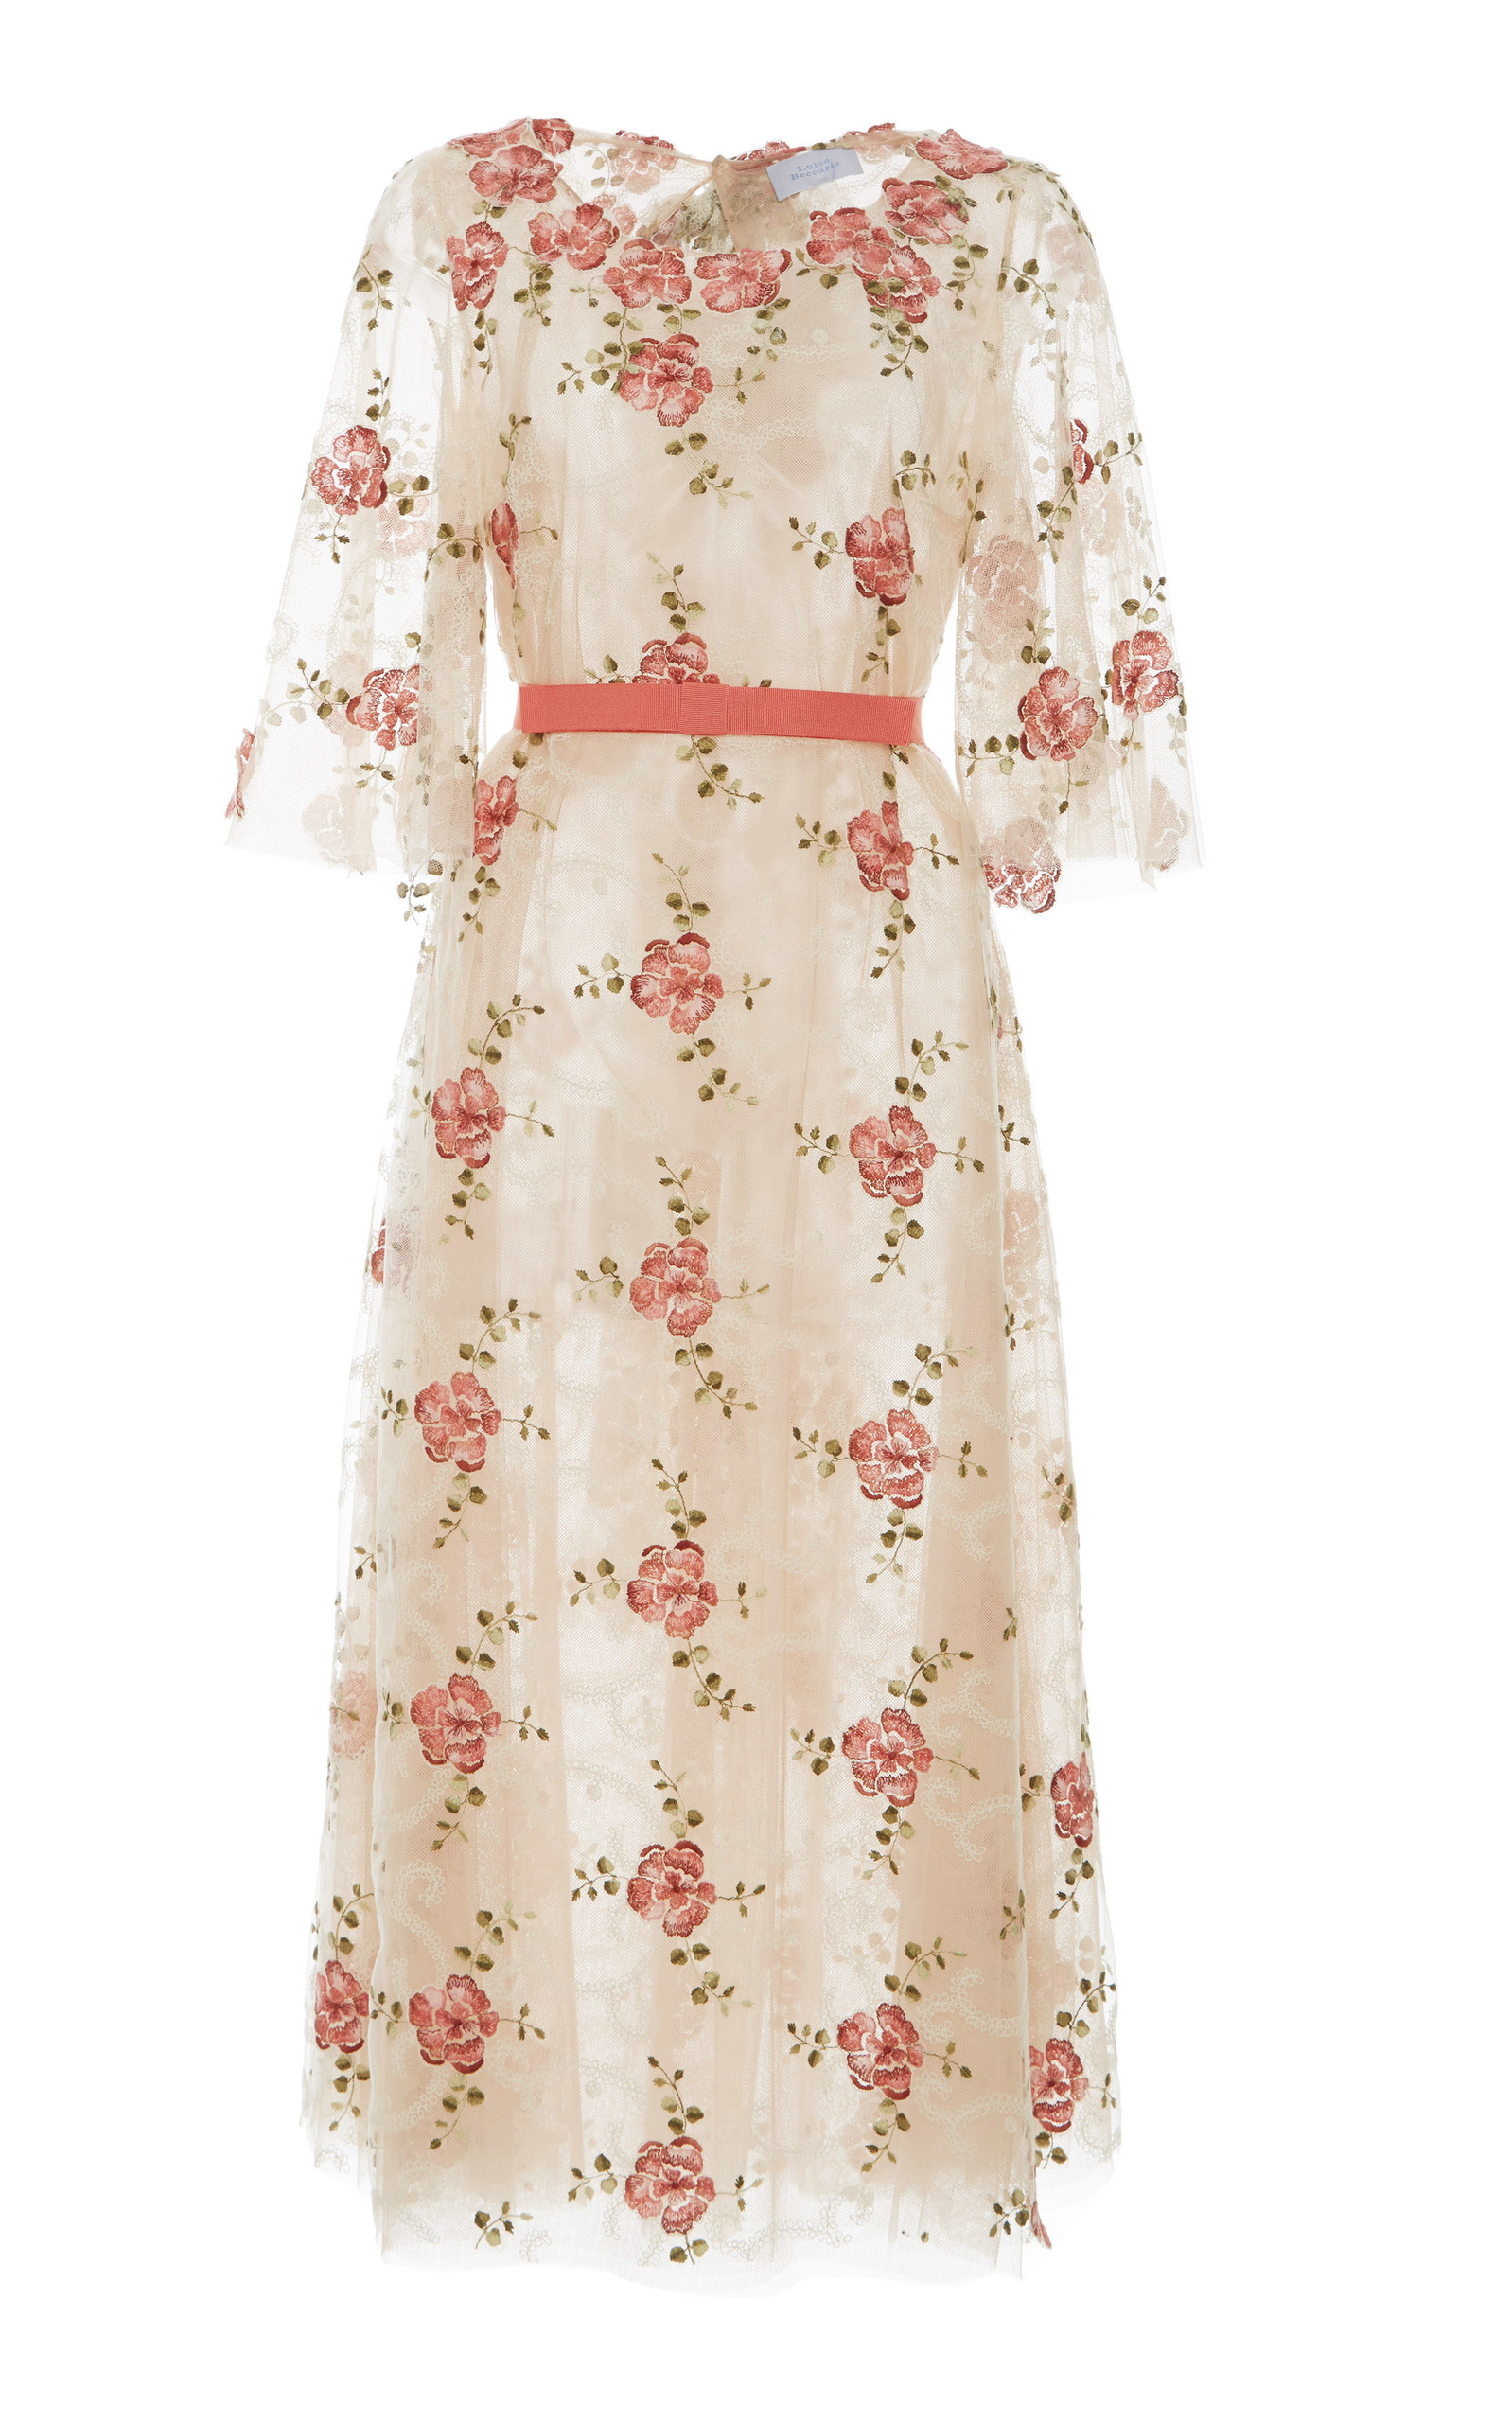 1b73806fcd9f6 Luisa BeccariaTulle Embroidered Flowers Dress. CLOSE. Loading